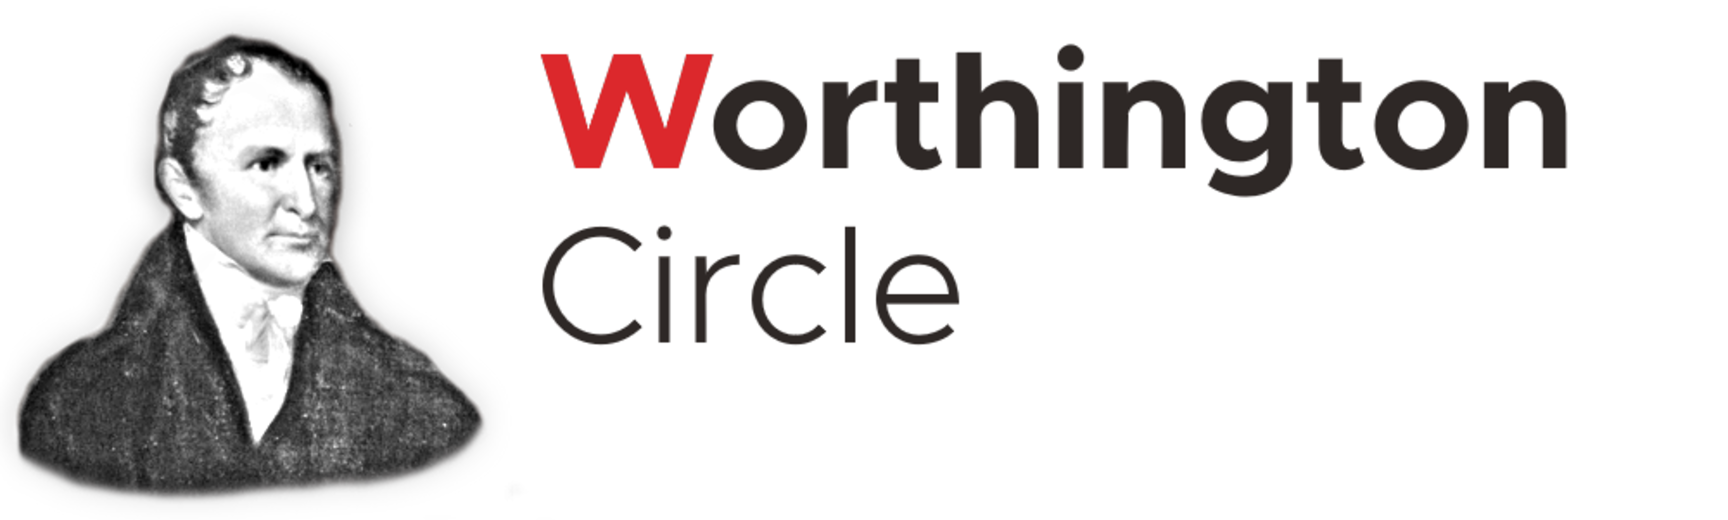 worthington circle